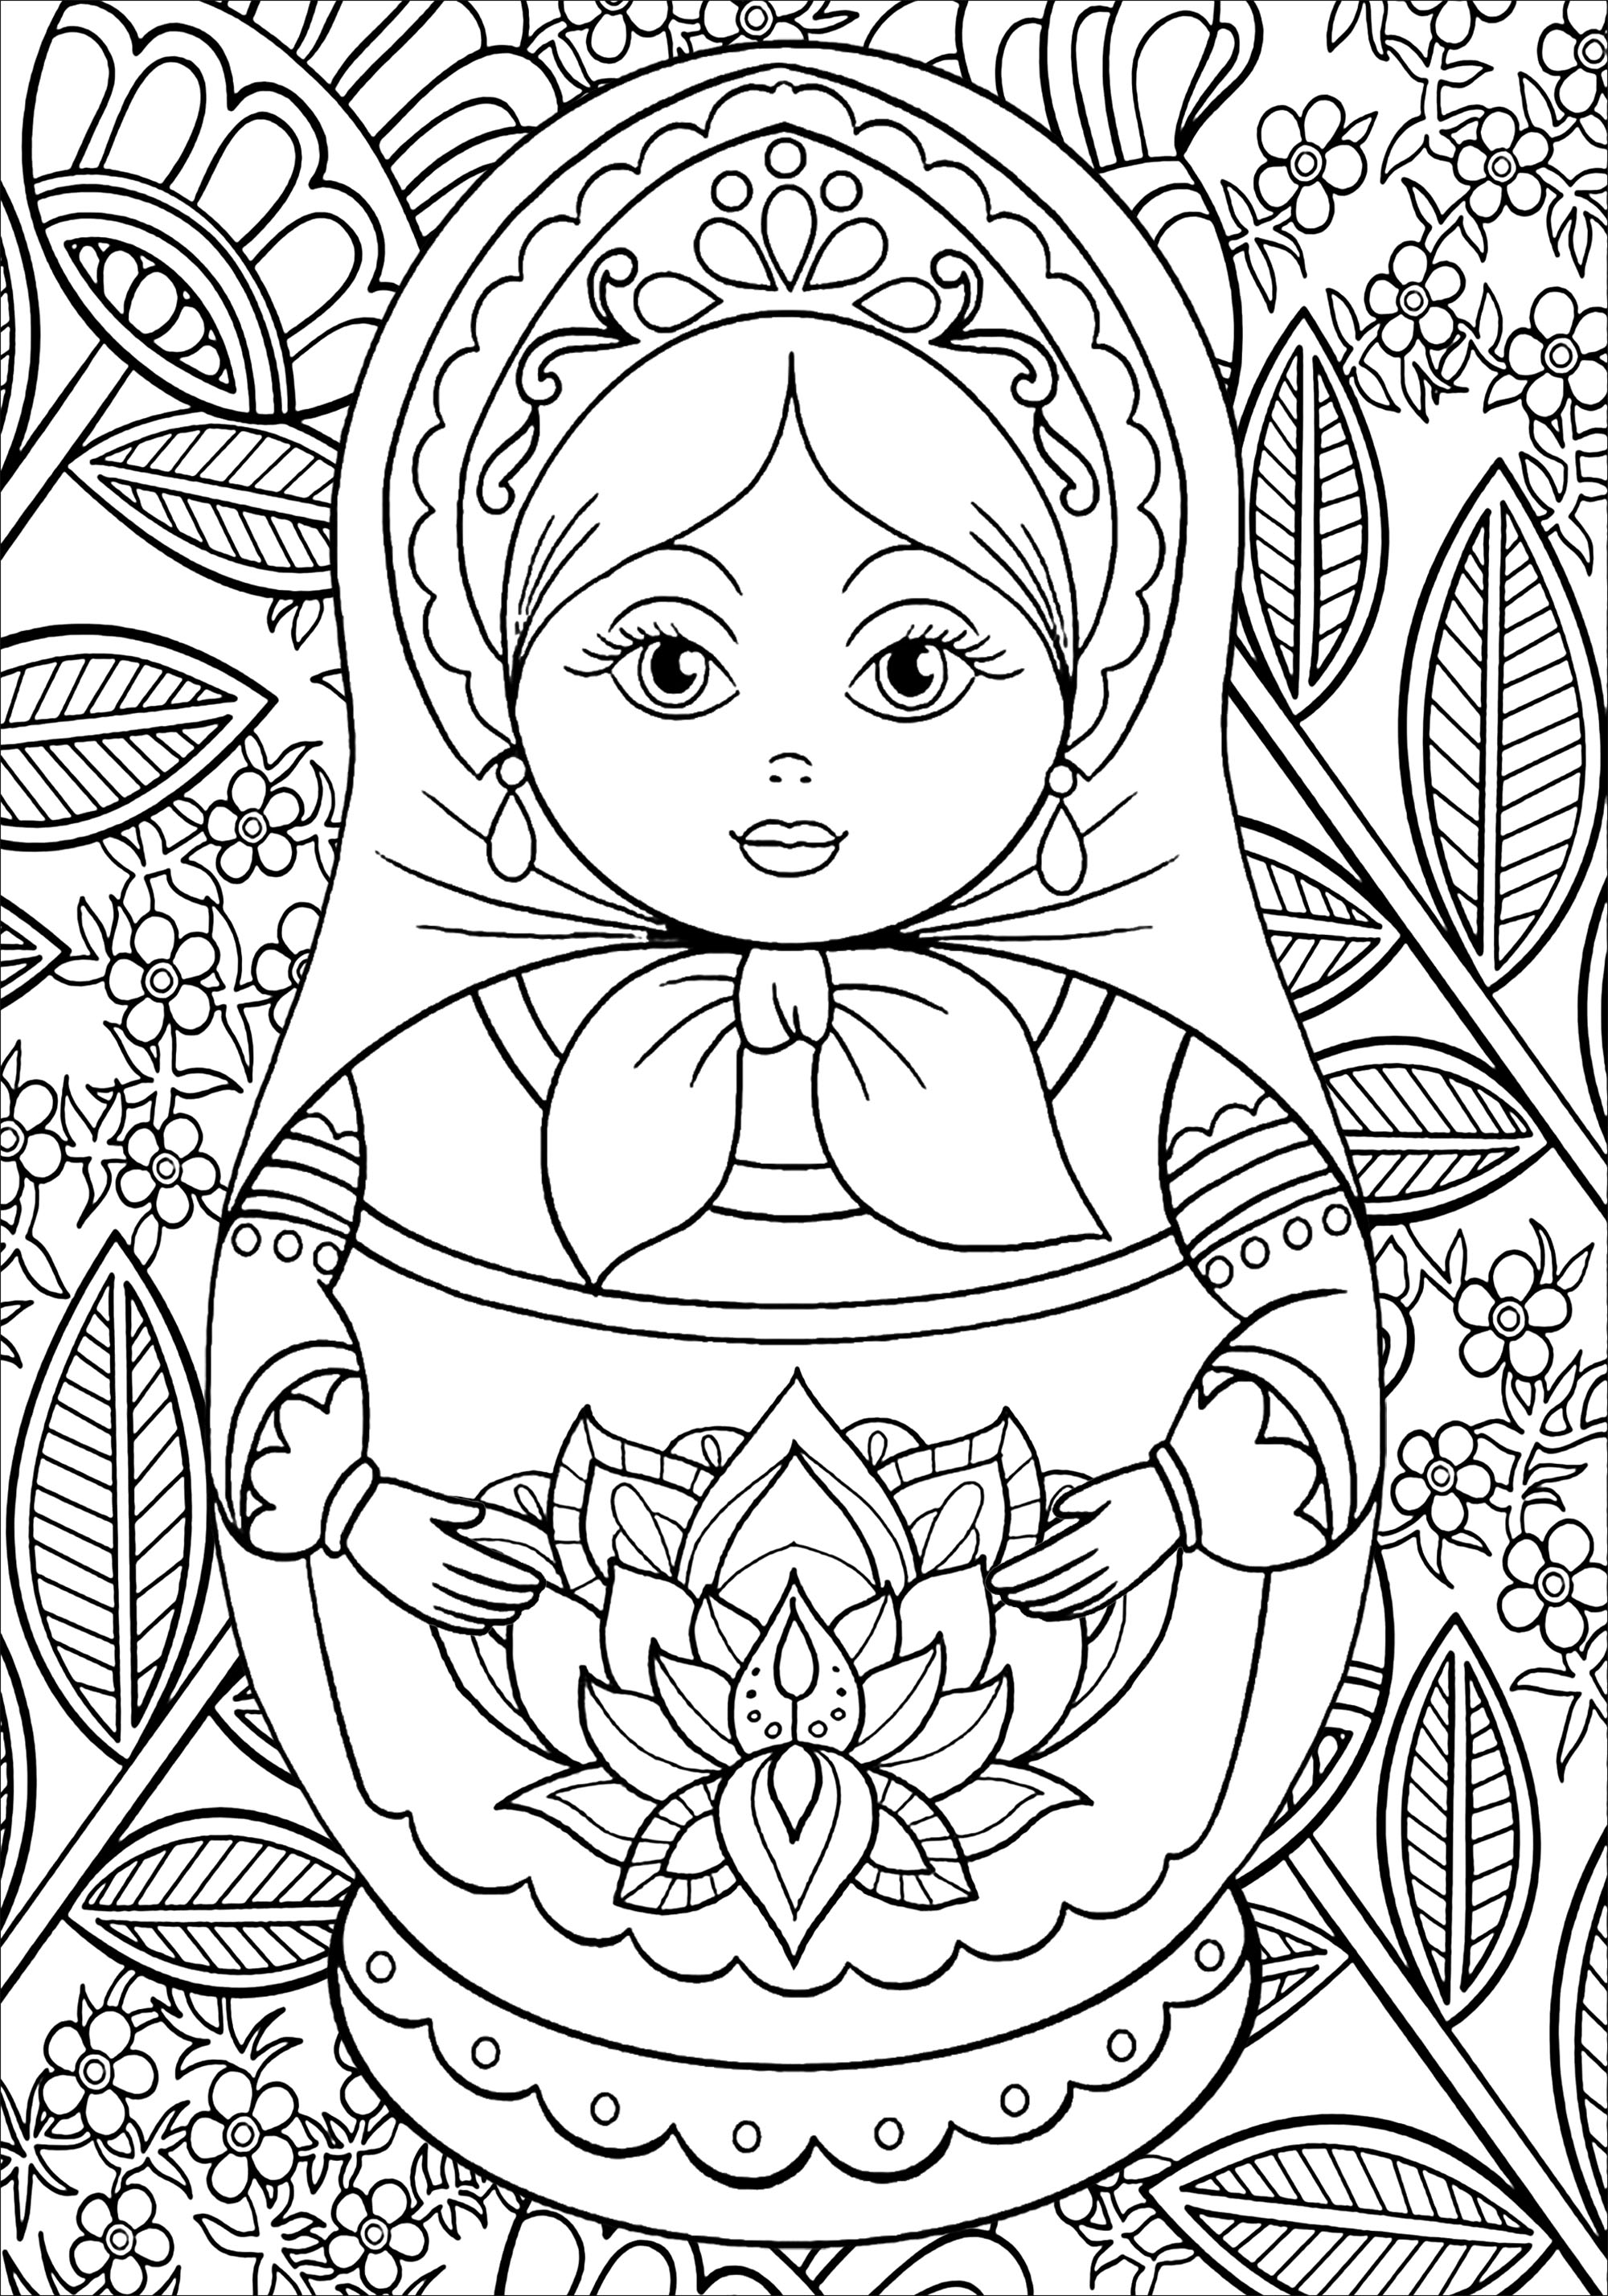 Russian doll in front of a flowery and leafy background